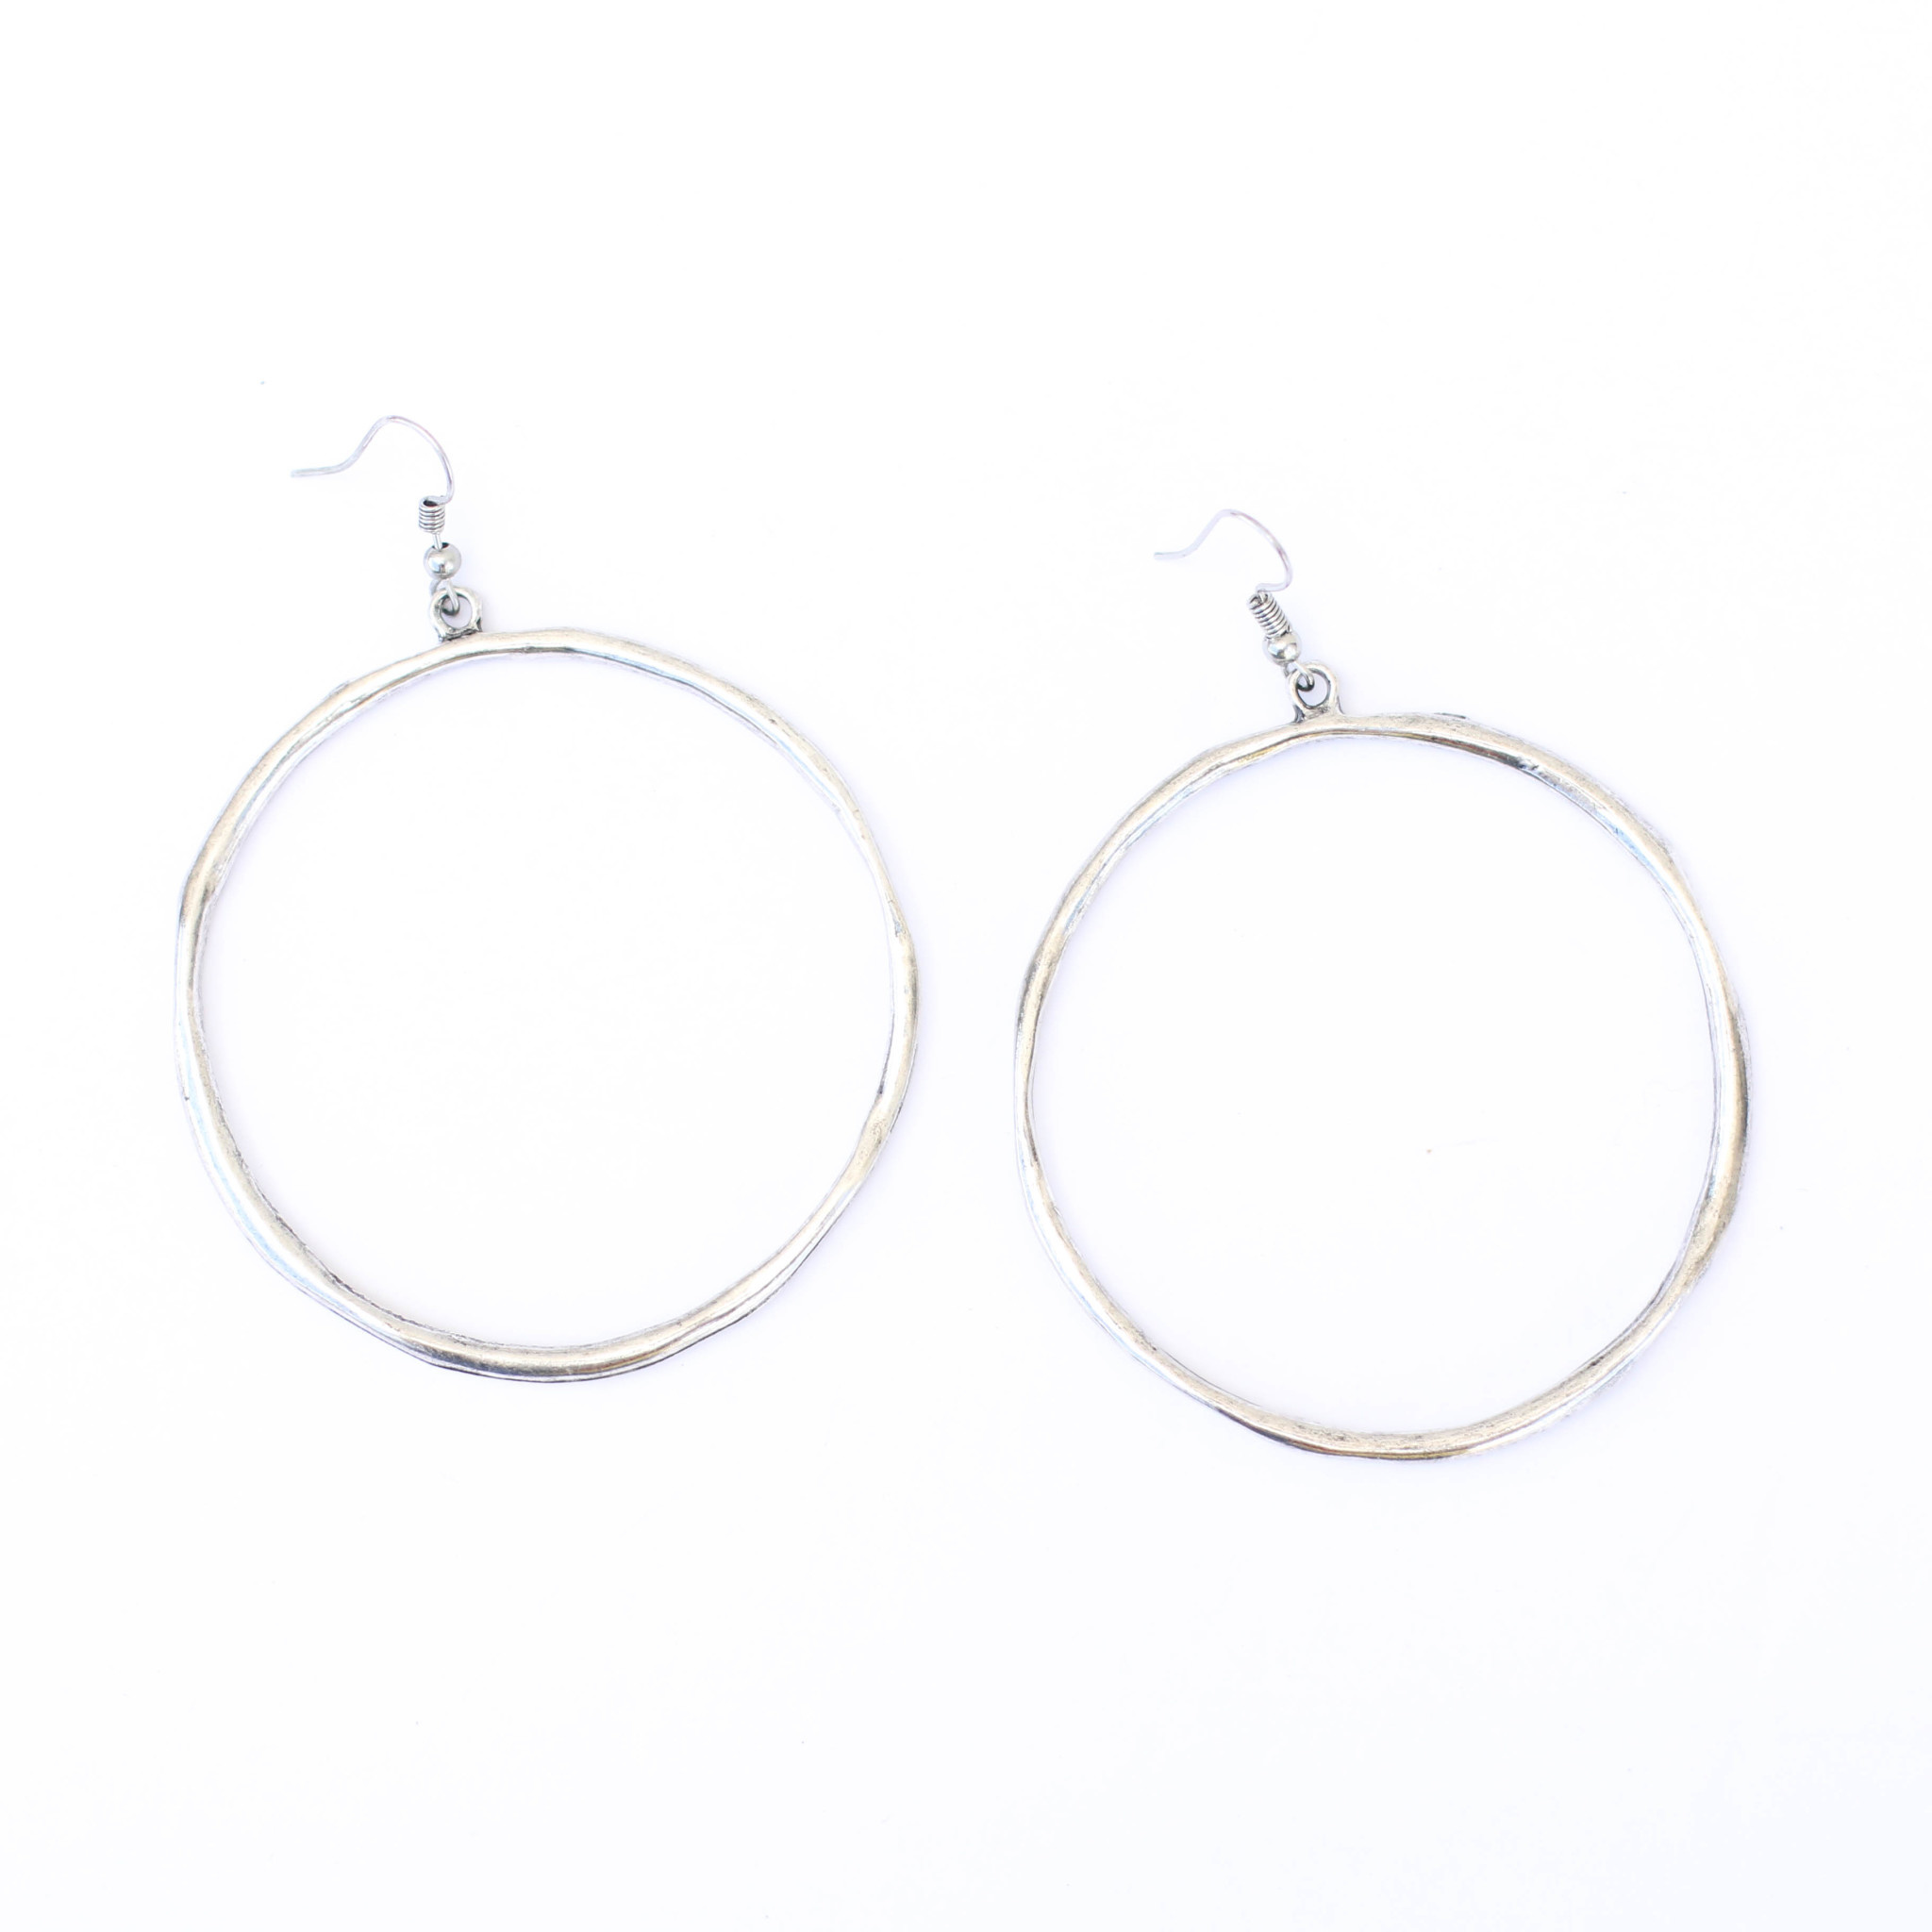 Punchy's Silver Hoop Dangle Earring